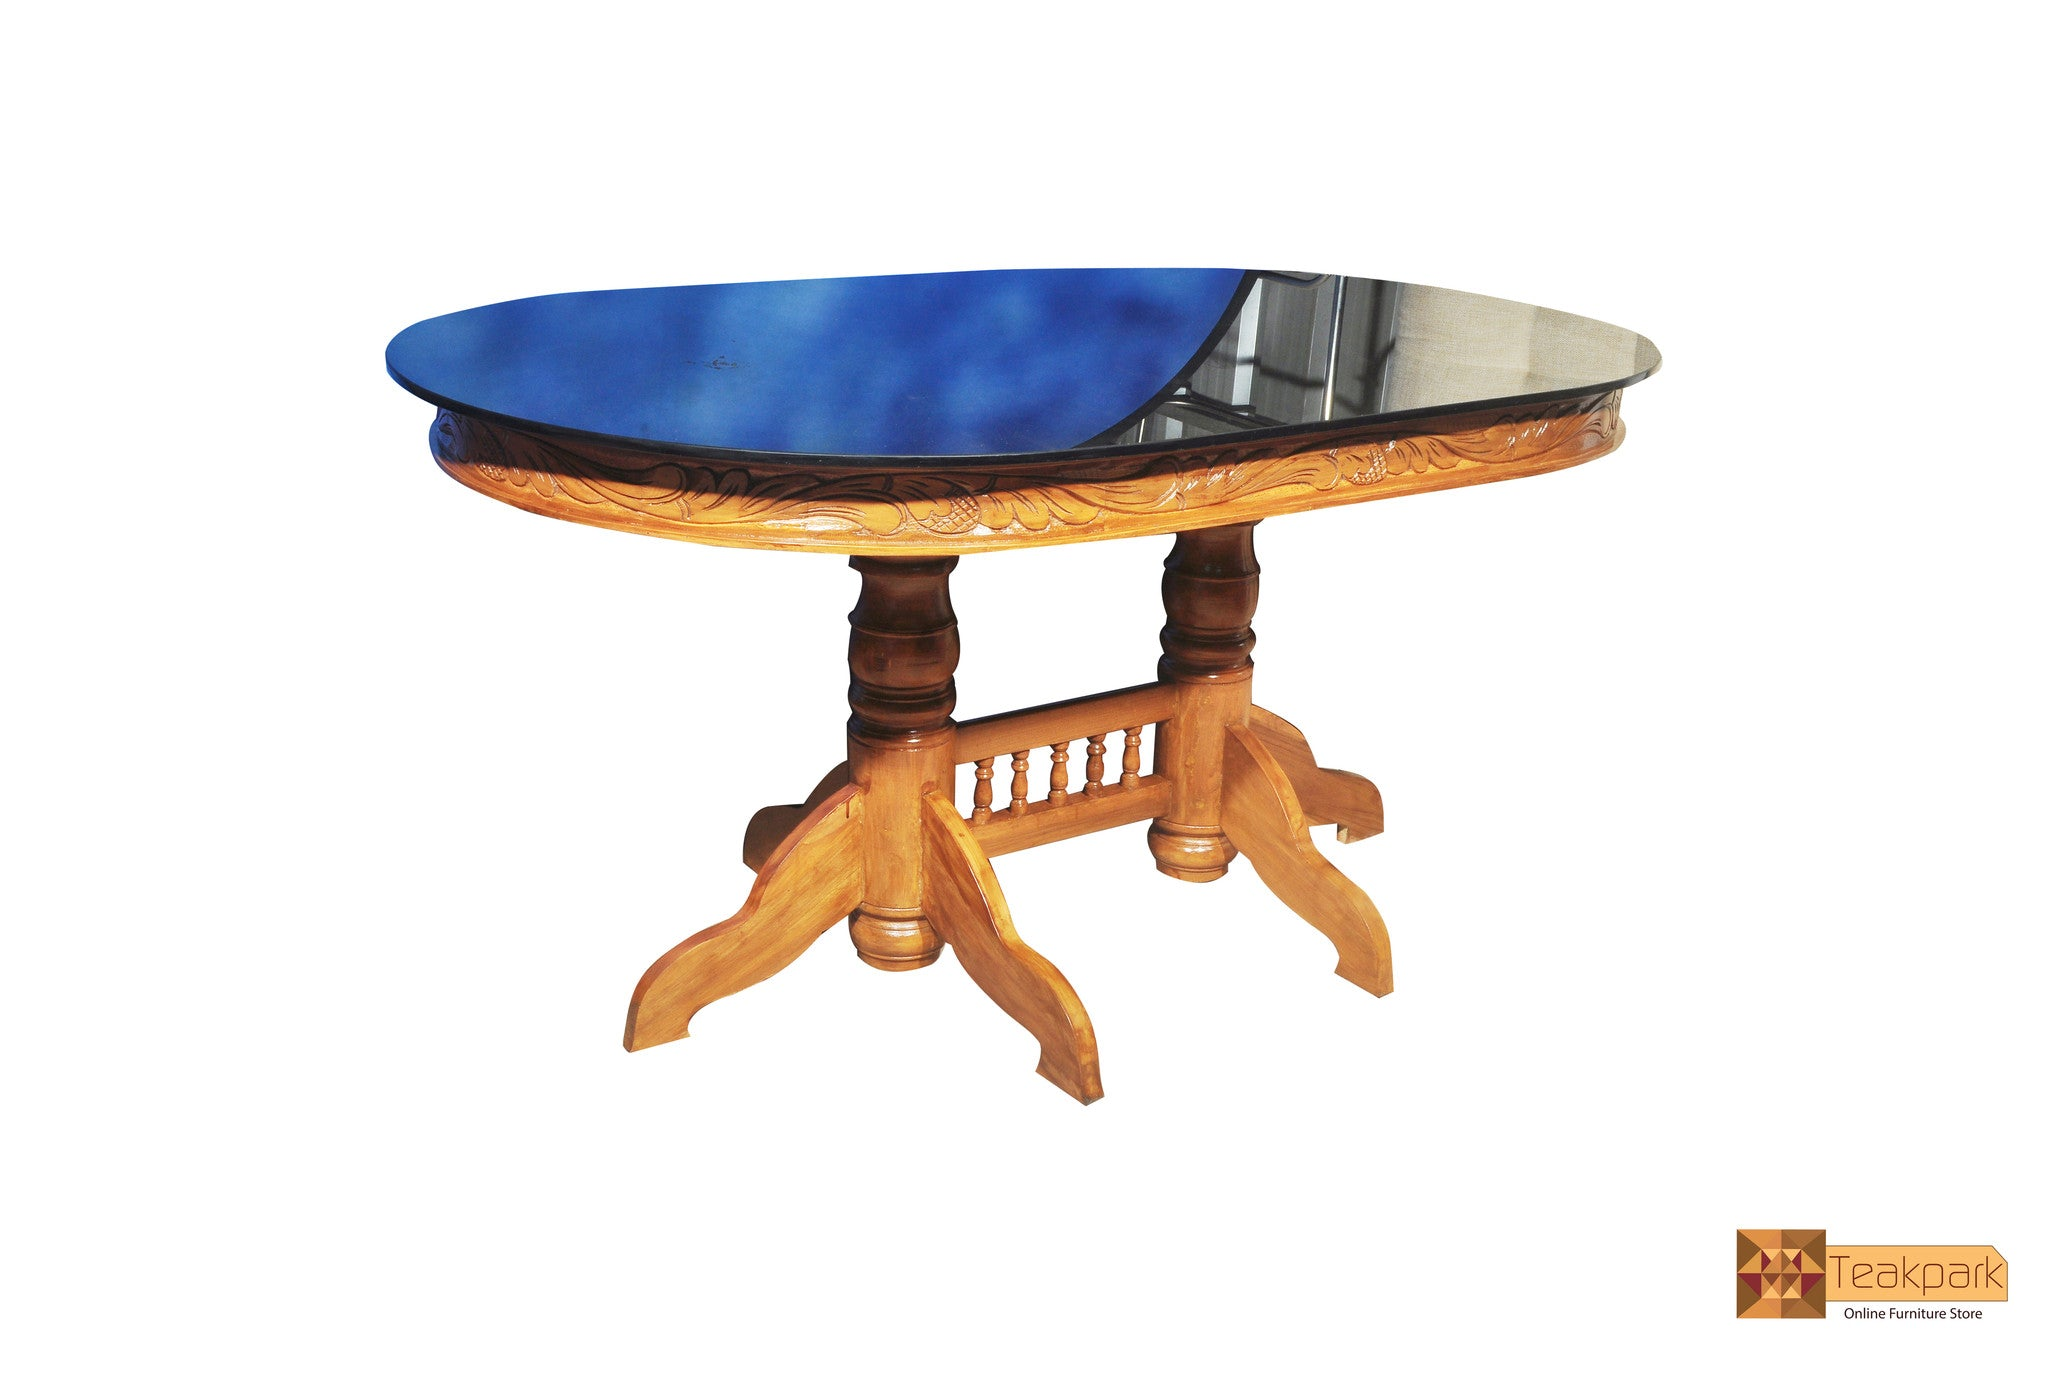 Ganga Oval Teak Wood Dining Table With Glass Top Table